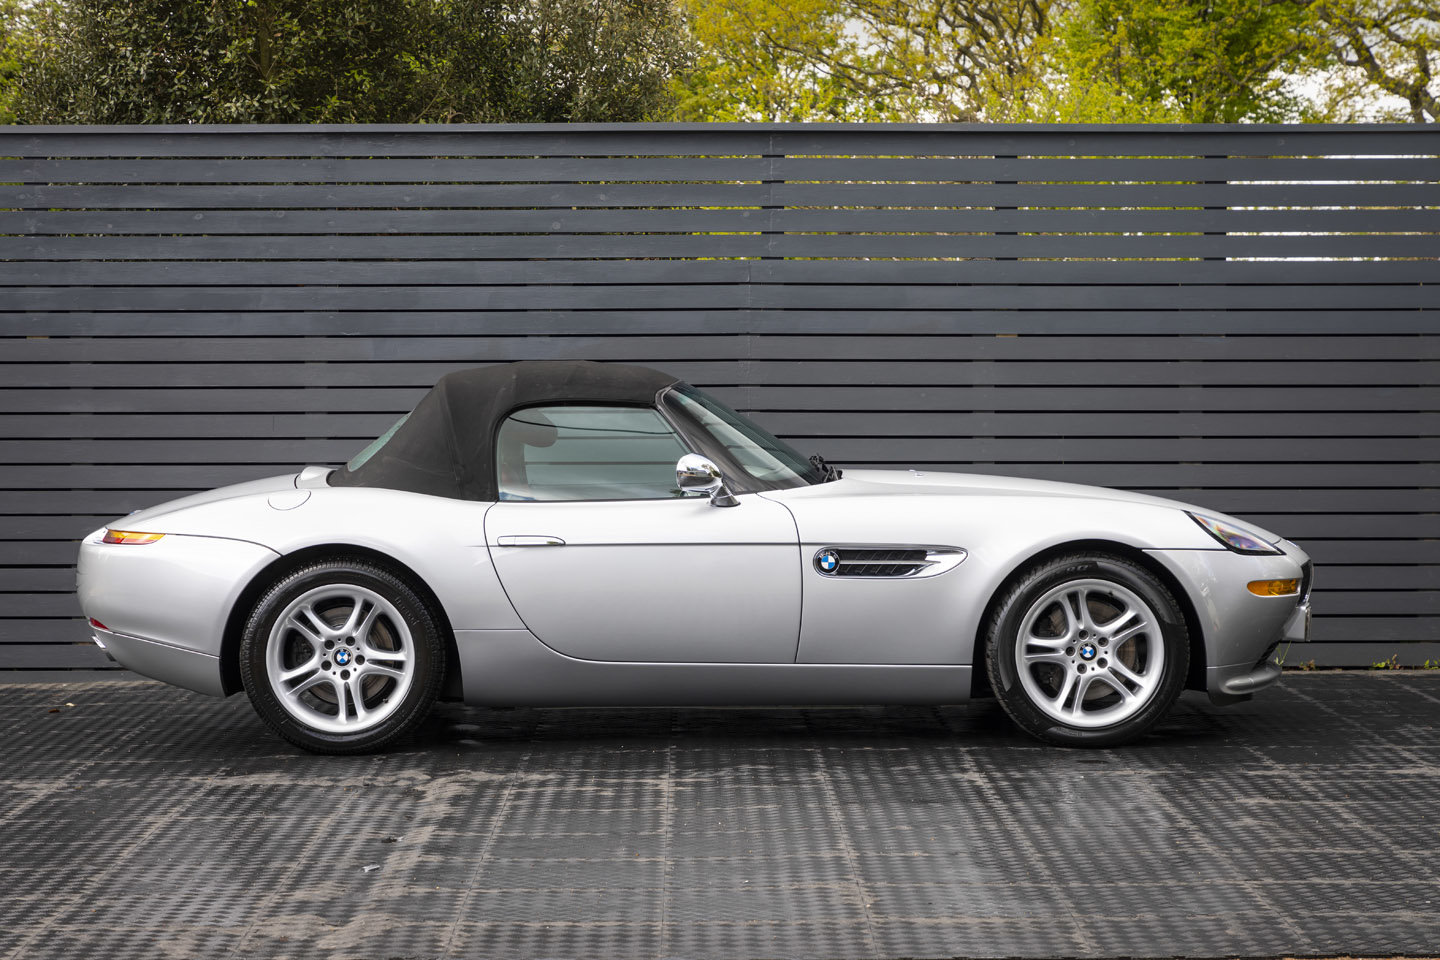 2001 BMW Z8 Roadster ONLY 10500 MILES UK CAR For Sale (picture 4 of 22)